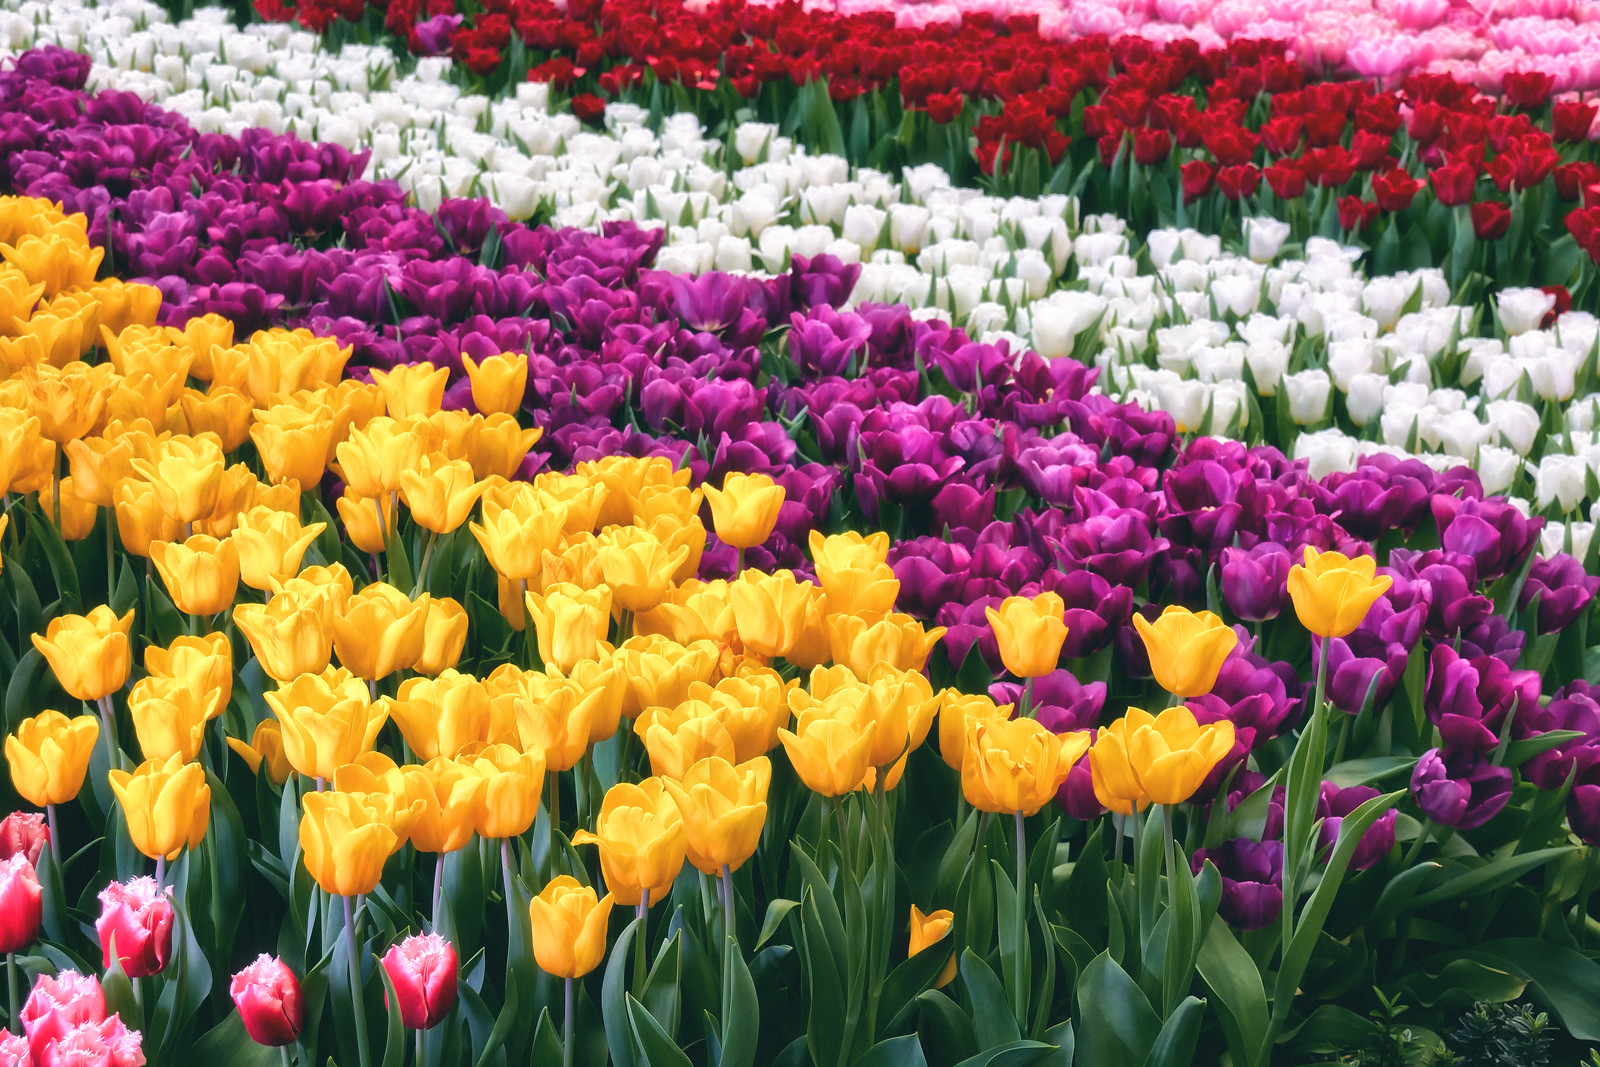 Rows of Tulips Flower